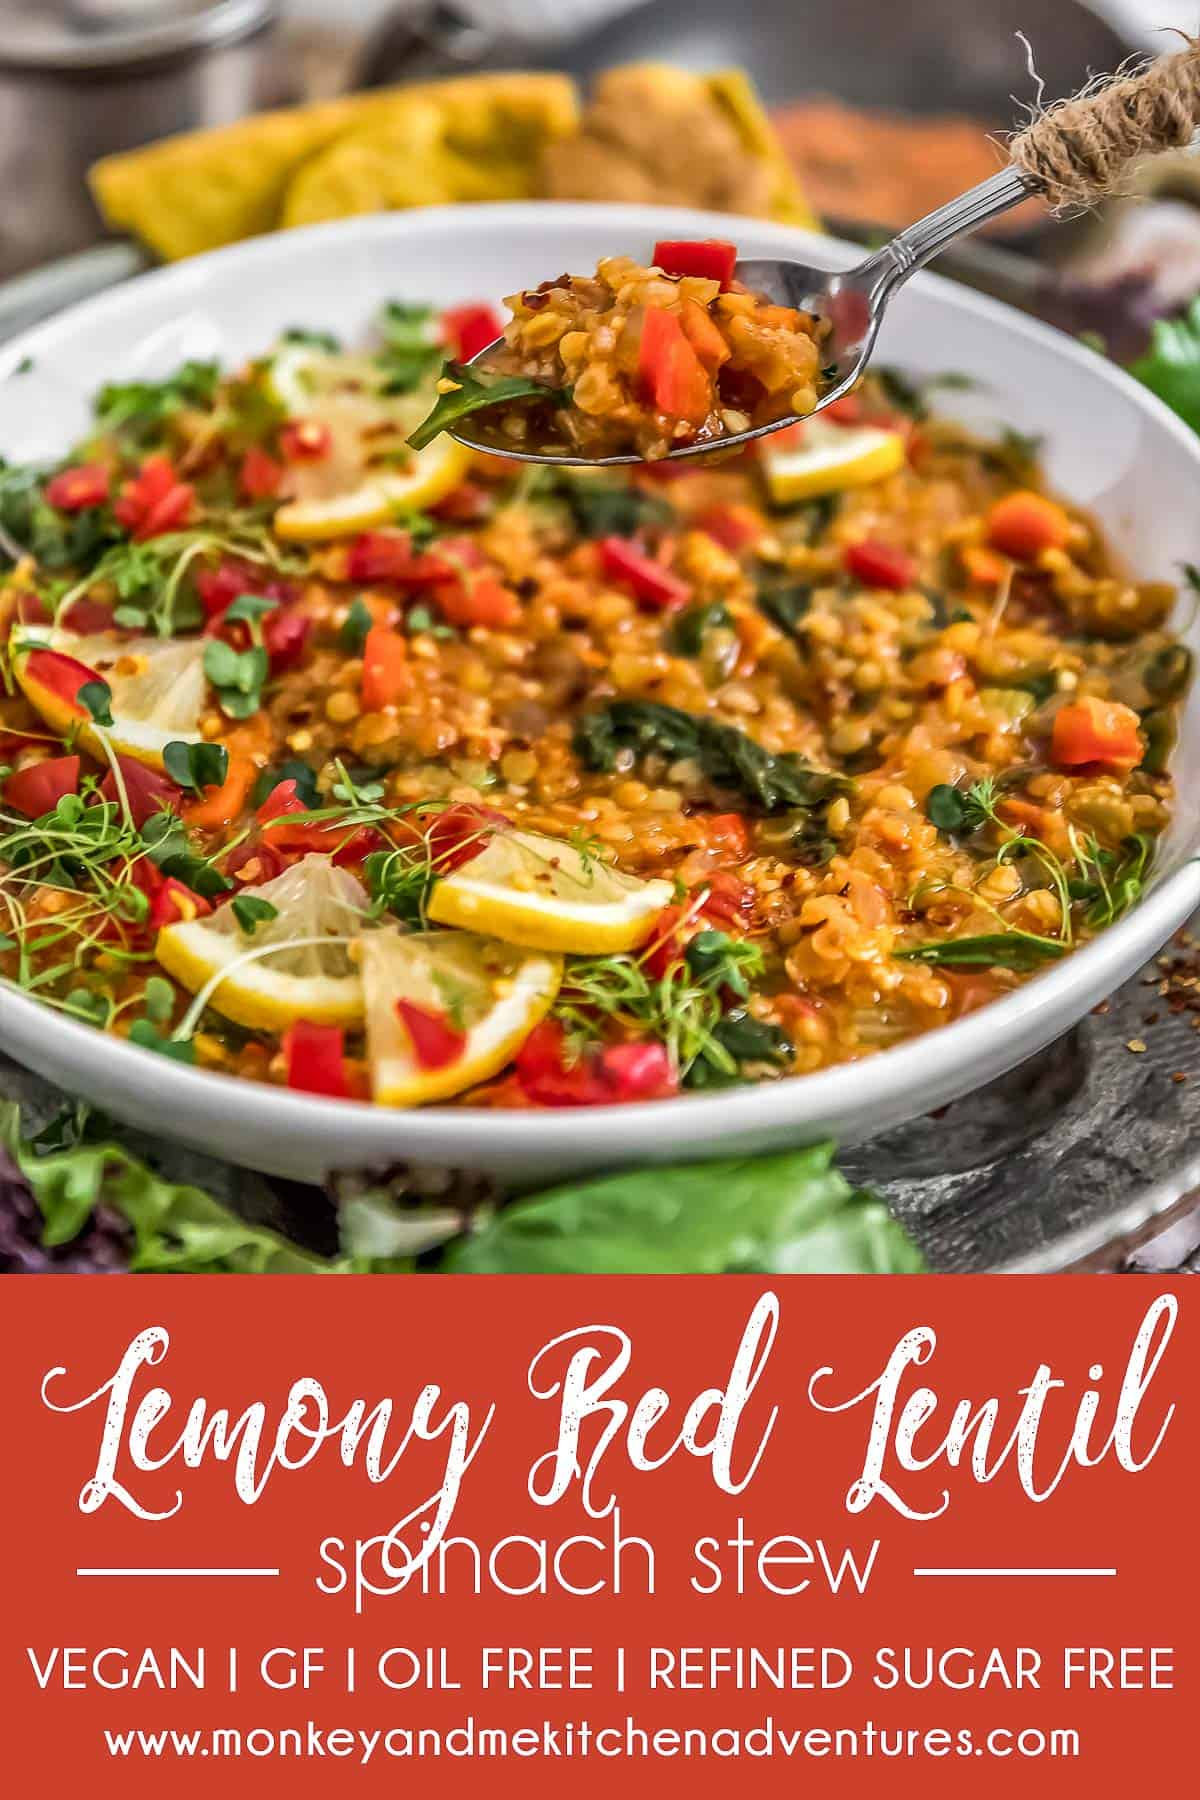 Lemony Red Lentil Spinach Stew with text description